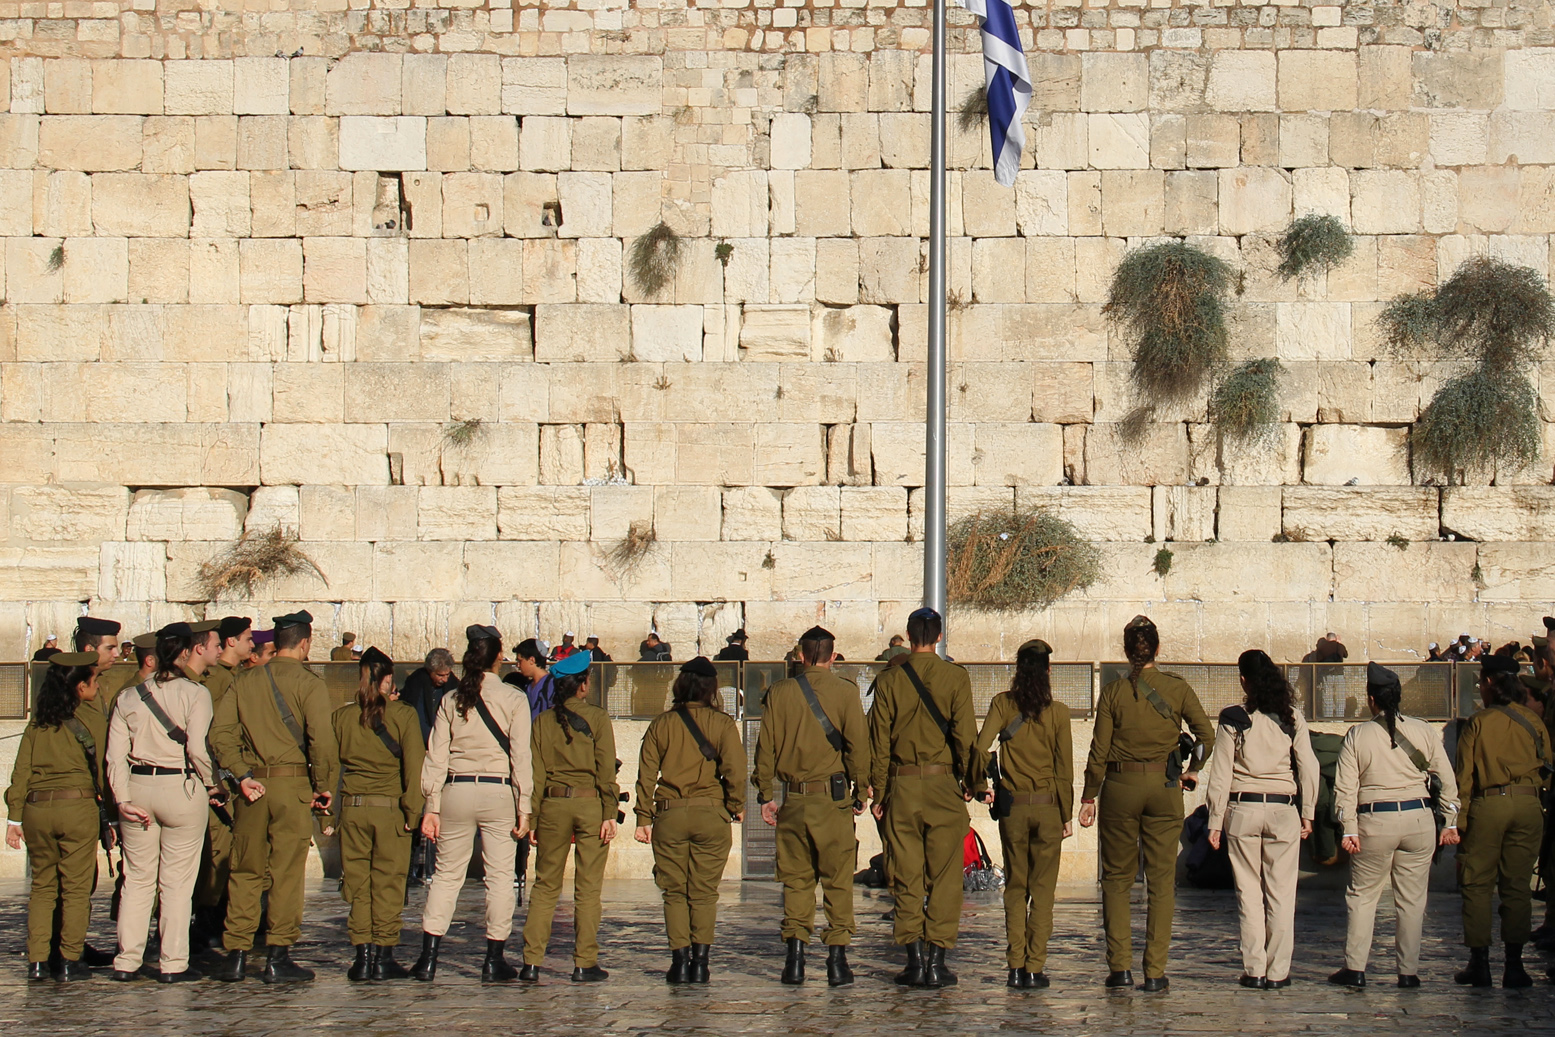 Western Wall: Soldiers